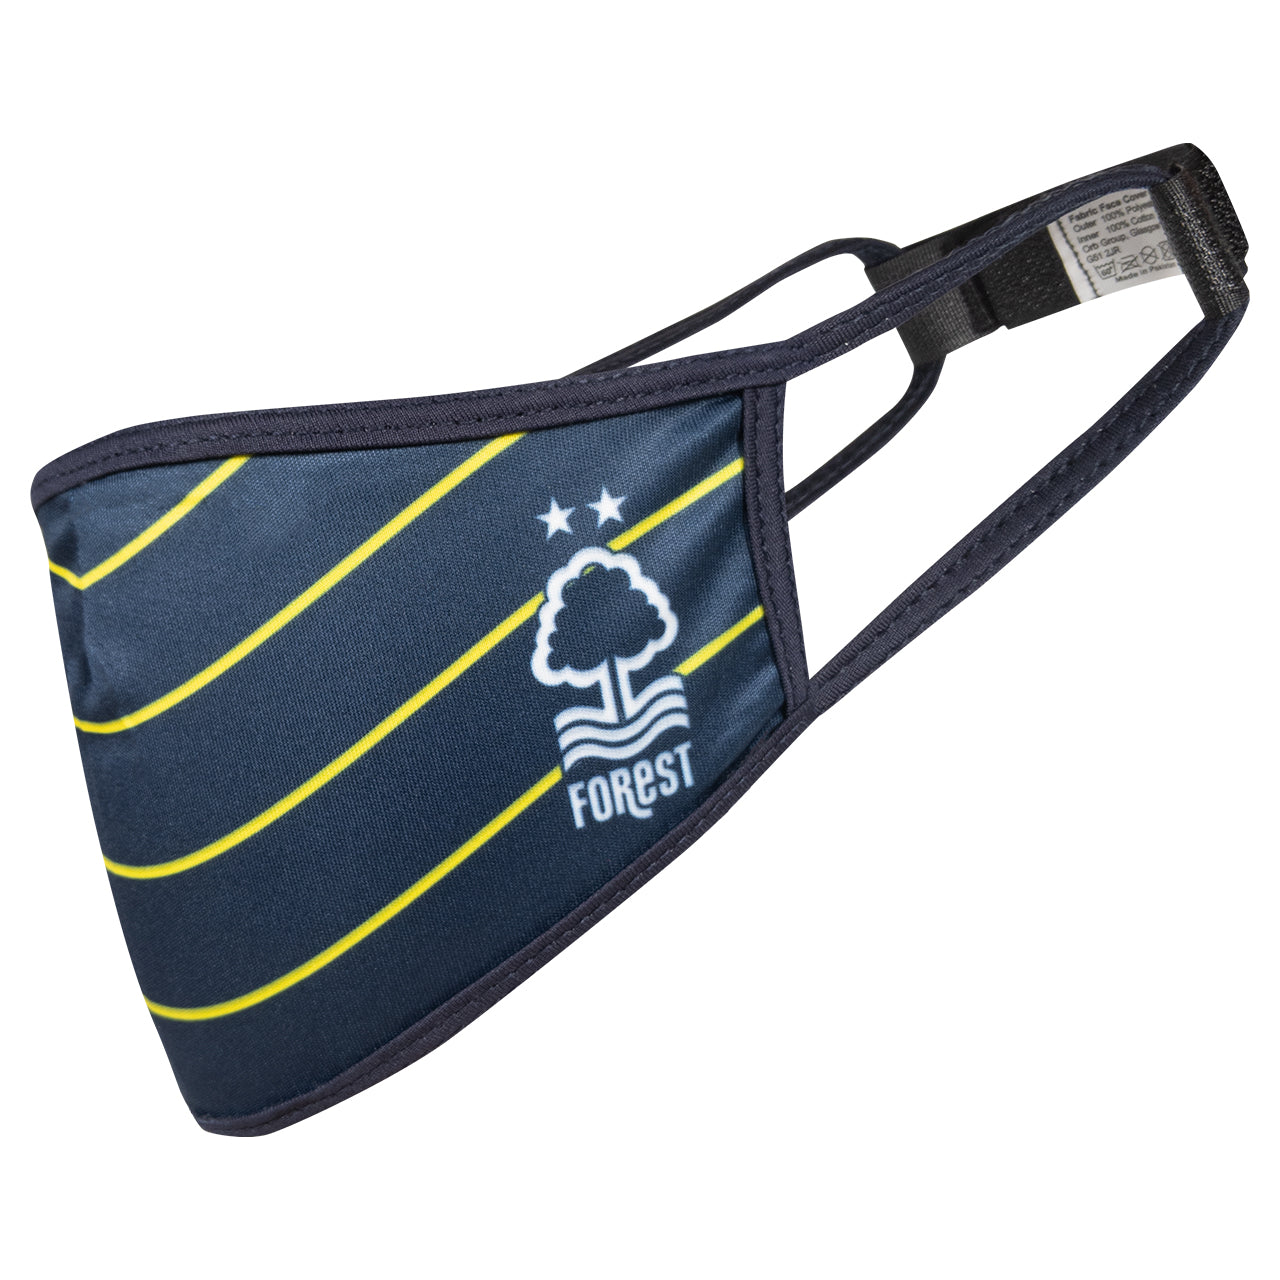 NFFC Junior Face Cover - Navy